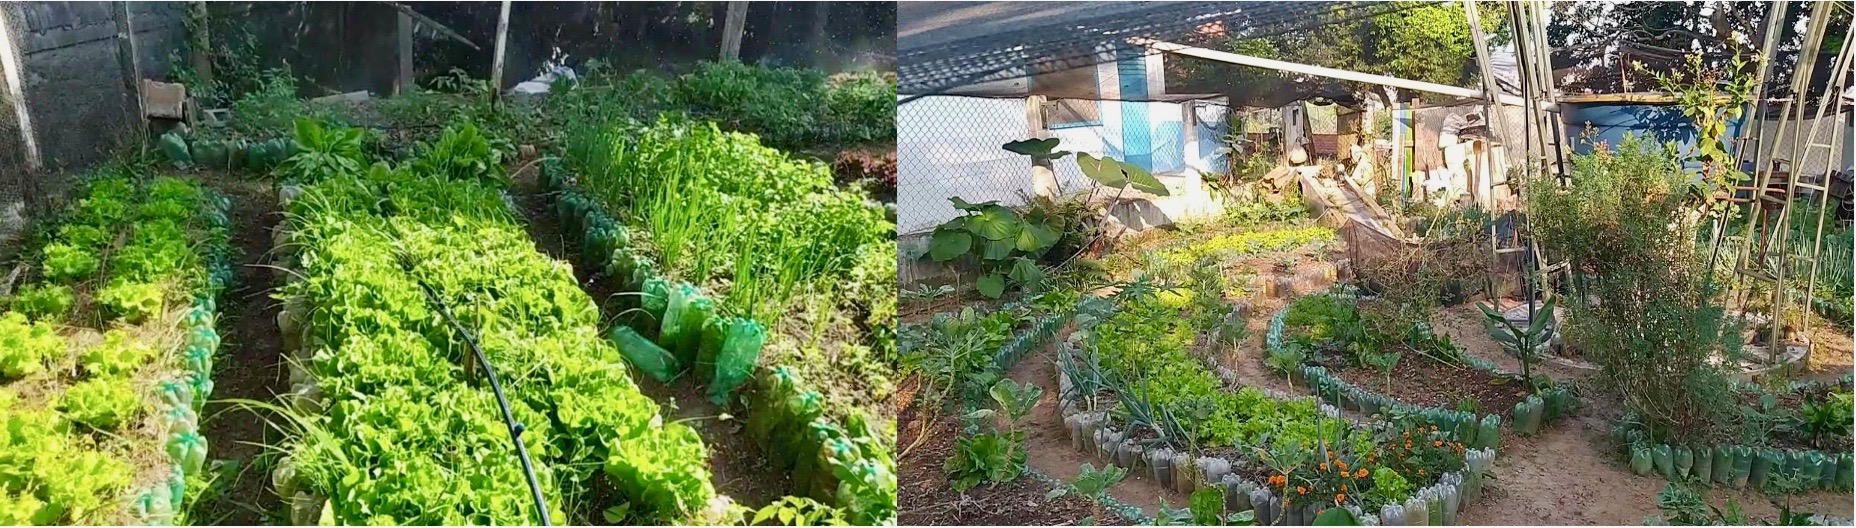 Sustainable Green Dish Garden